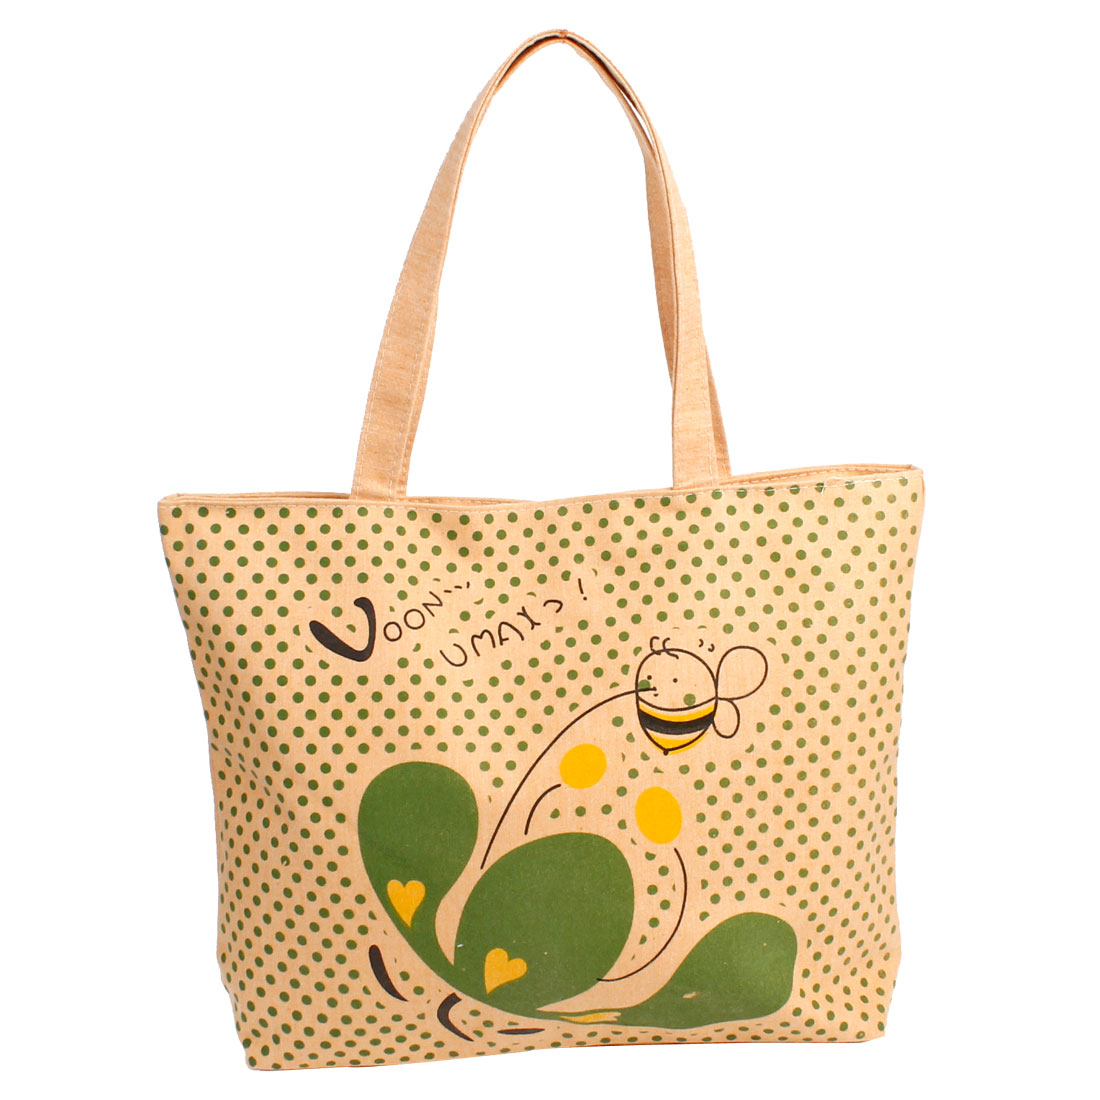 Green Dot Pattern Zipper Closure Shopping Handbag Apricot Color for Lady